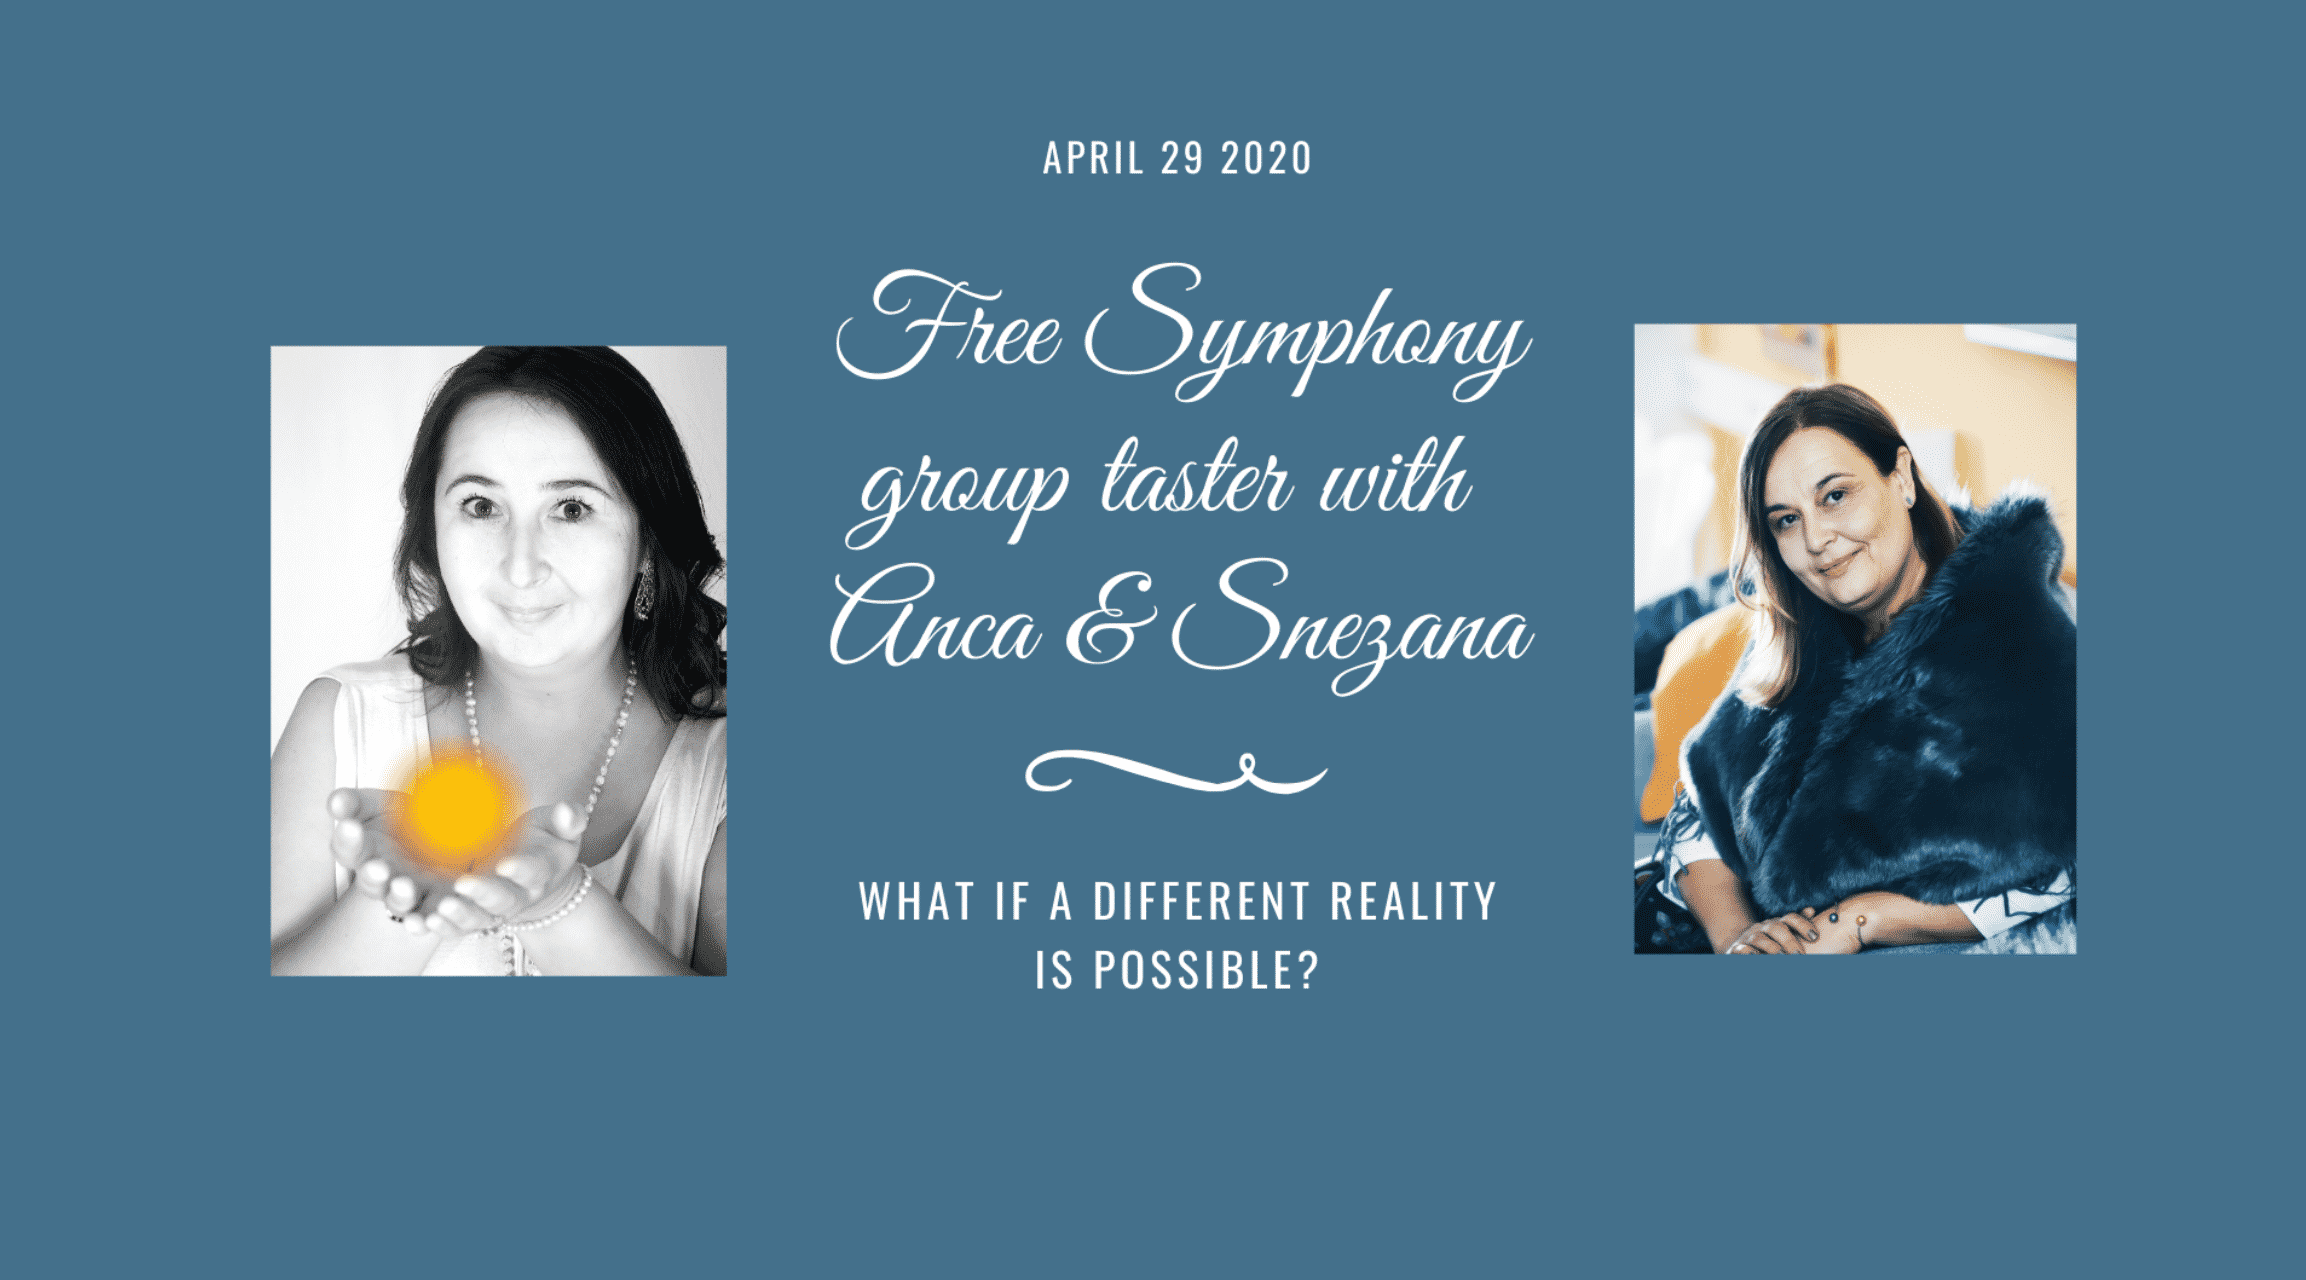 Free Symphony group taster with Anca Pal & Sneza Ulcar, 29.4., 20:00